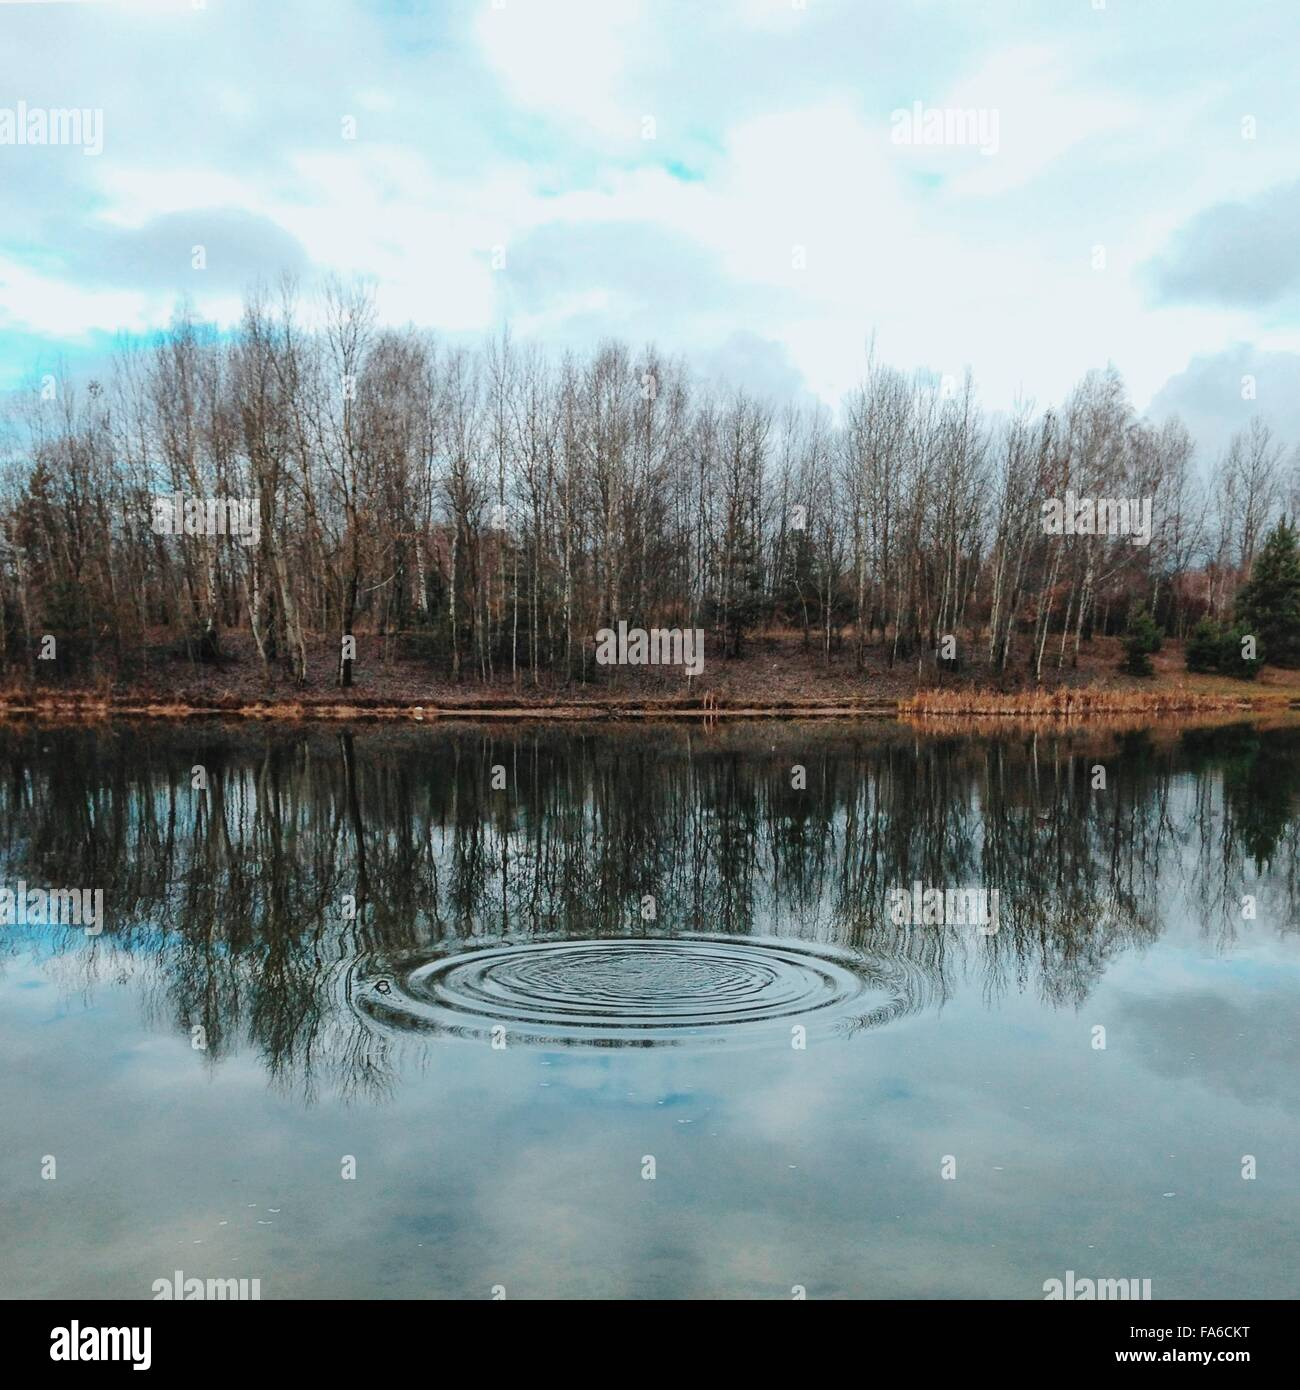 Concentric Water ripples in river - Stock Image